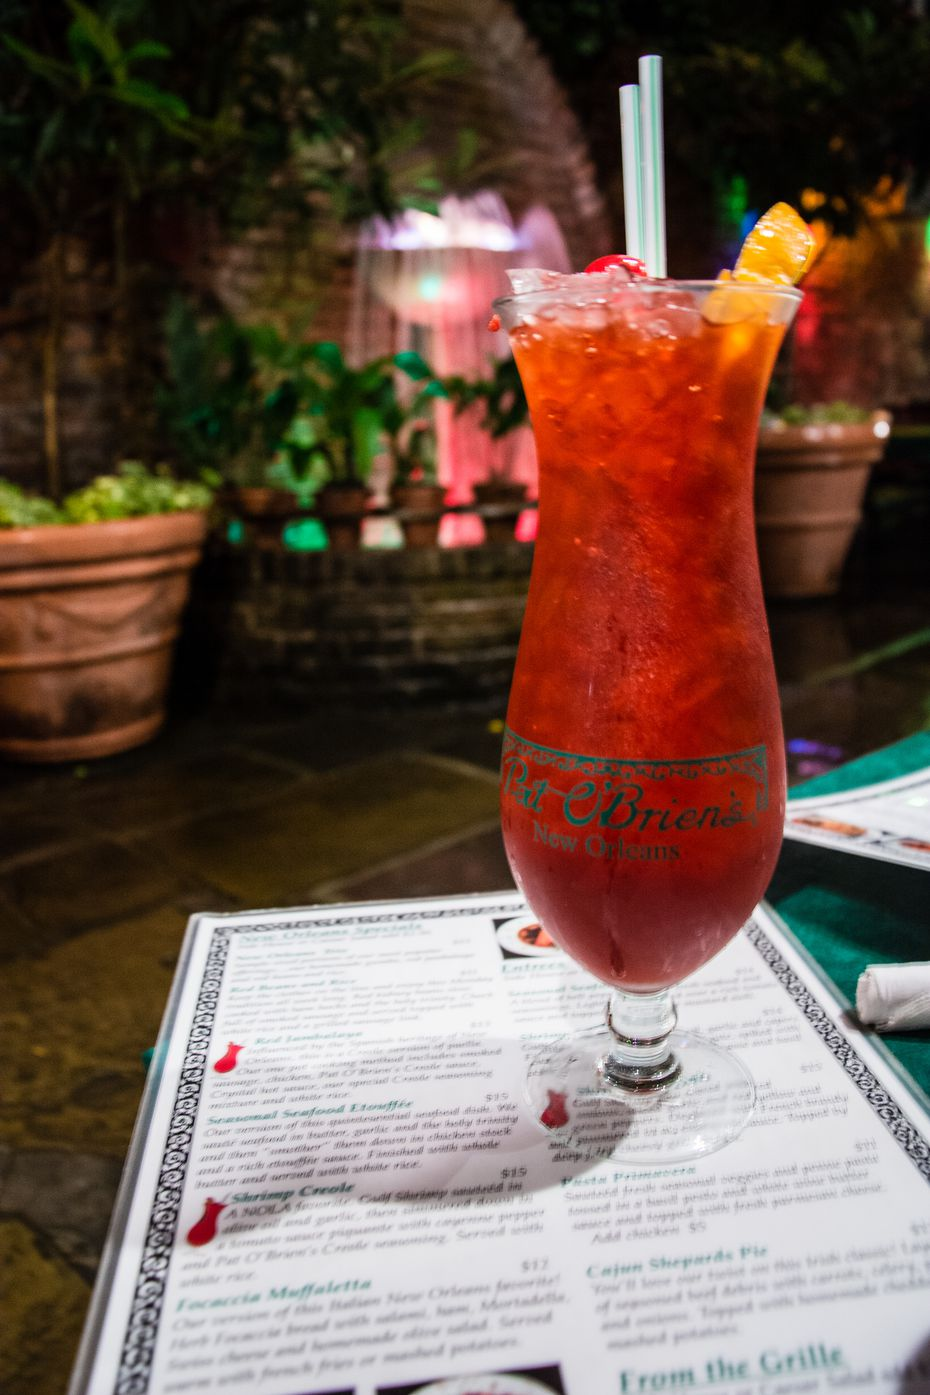 The Hurricane is said to be have been created at Pat O'Brien's Bar in New Orleans.